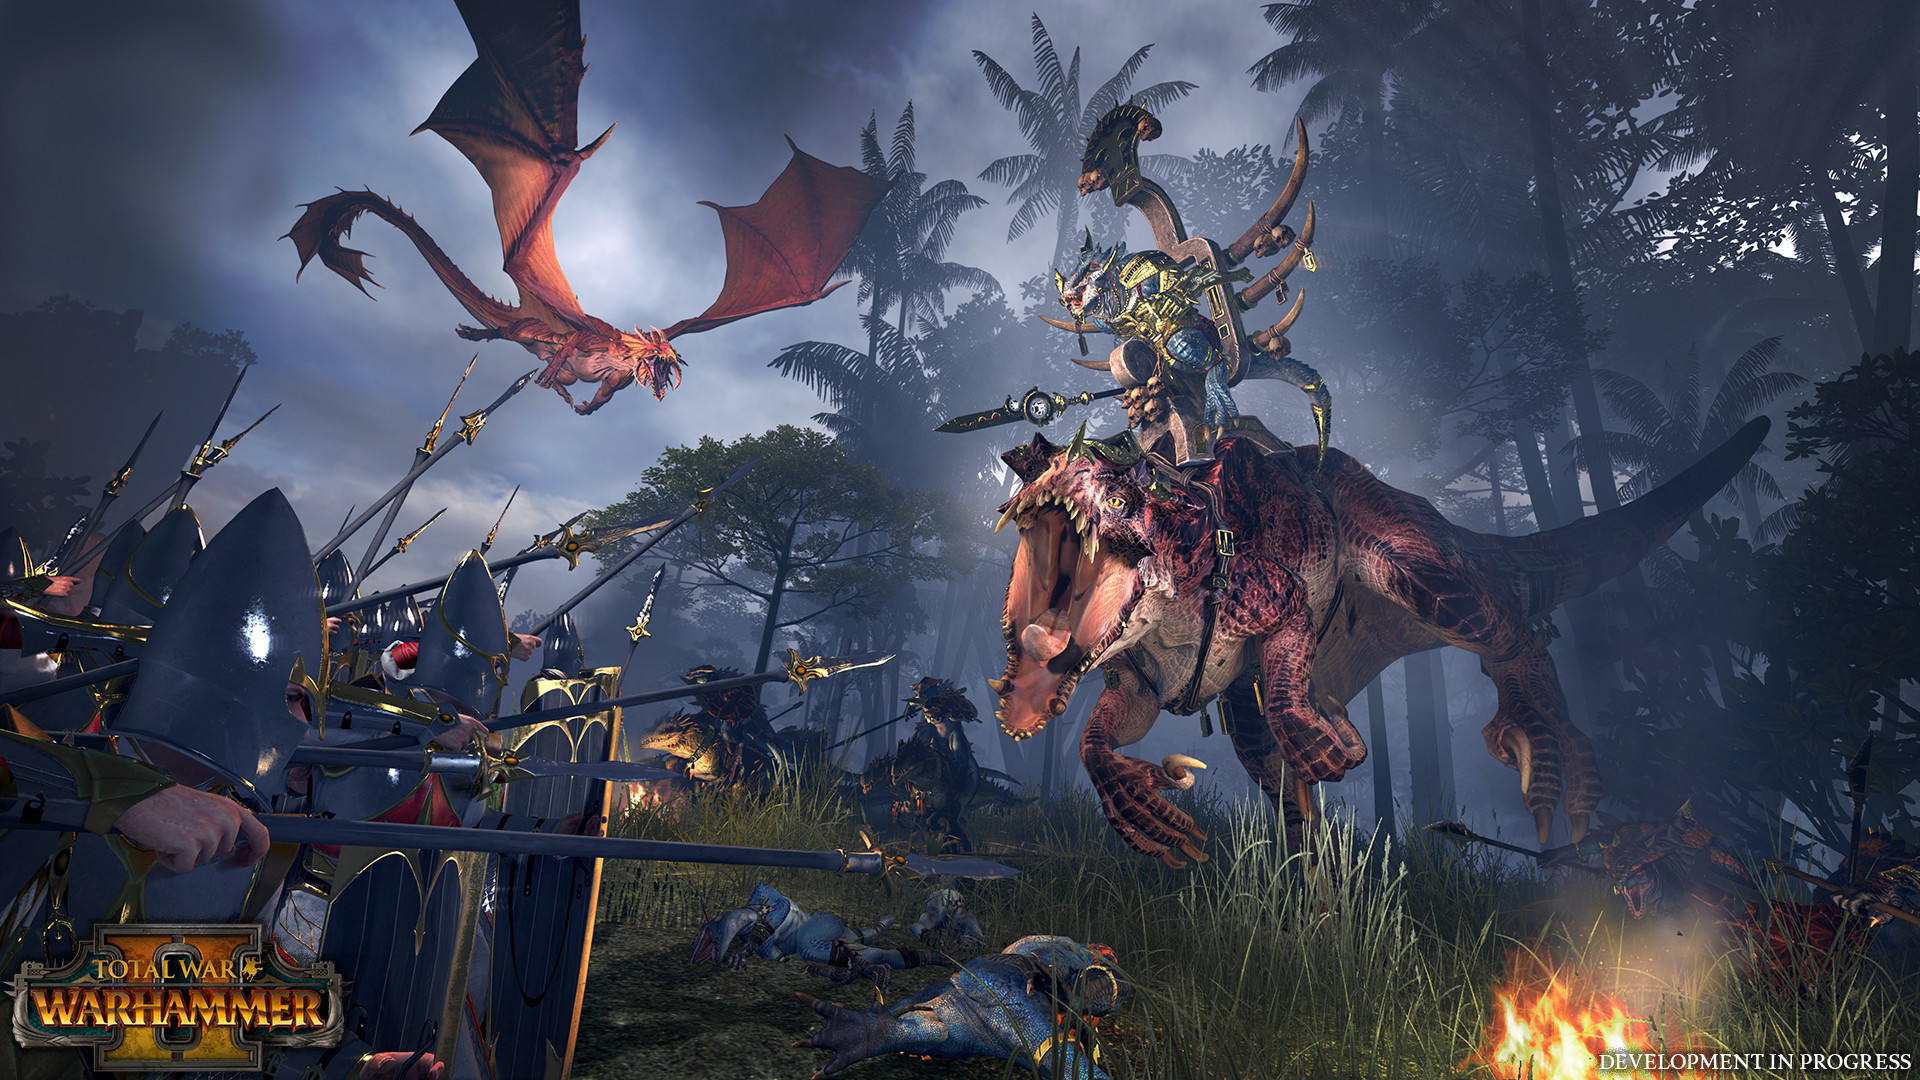 It's crazy to think that Total War: Warhammer II is nearly here screenshot